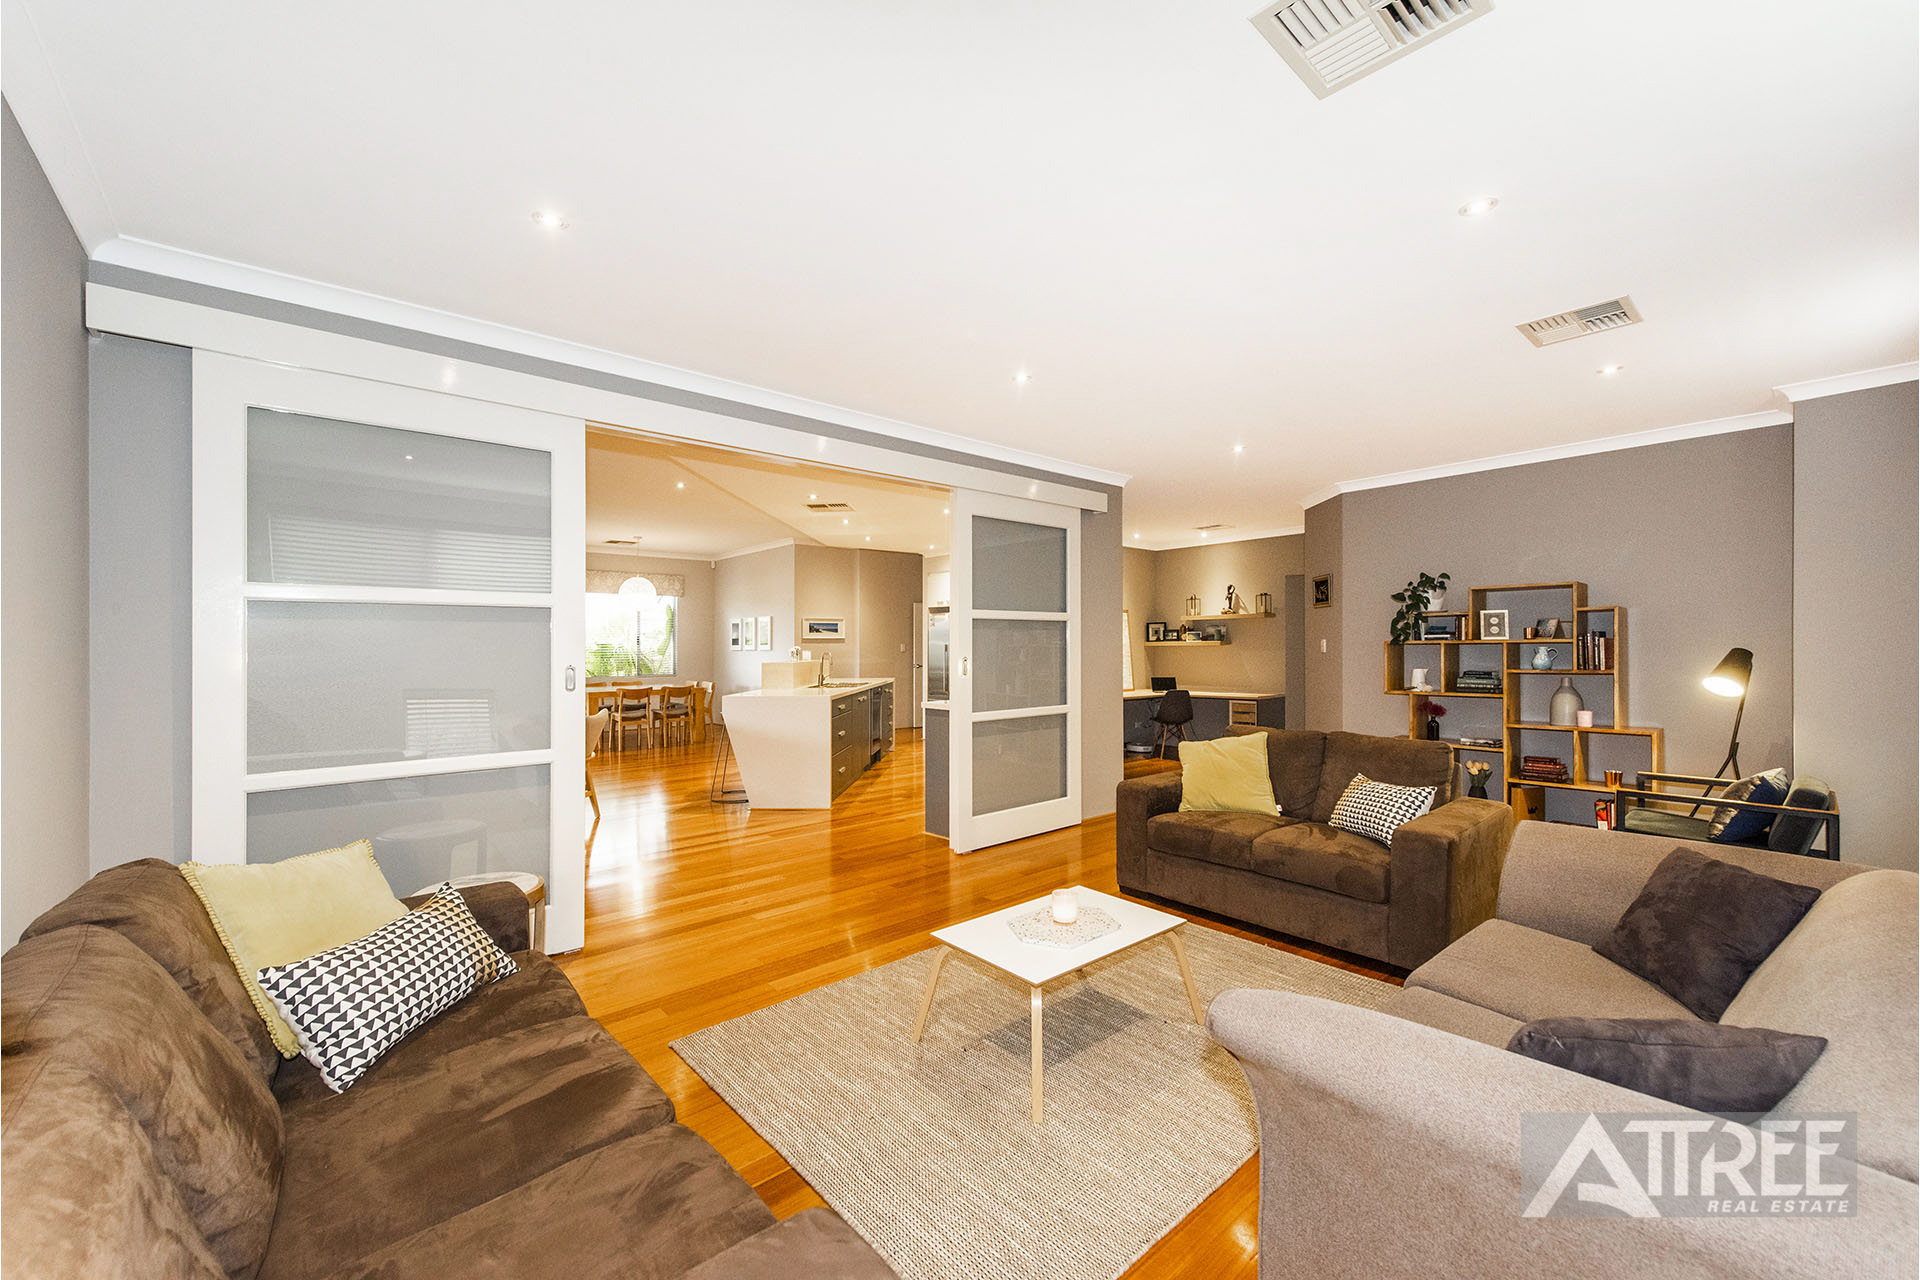 Property for sale in HARRISDALE, 11 Splendid Gardens : Attree Real Estate